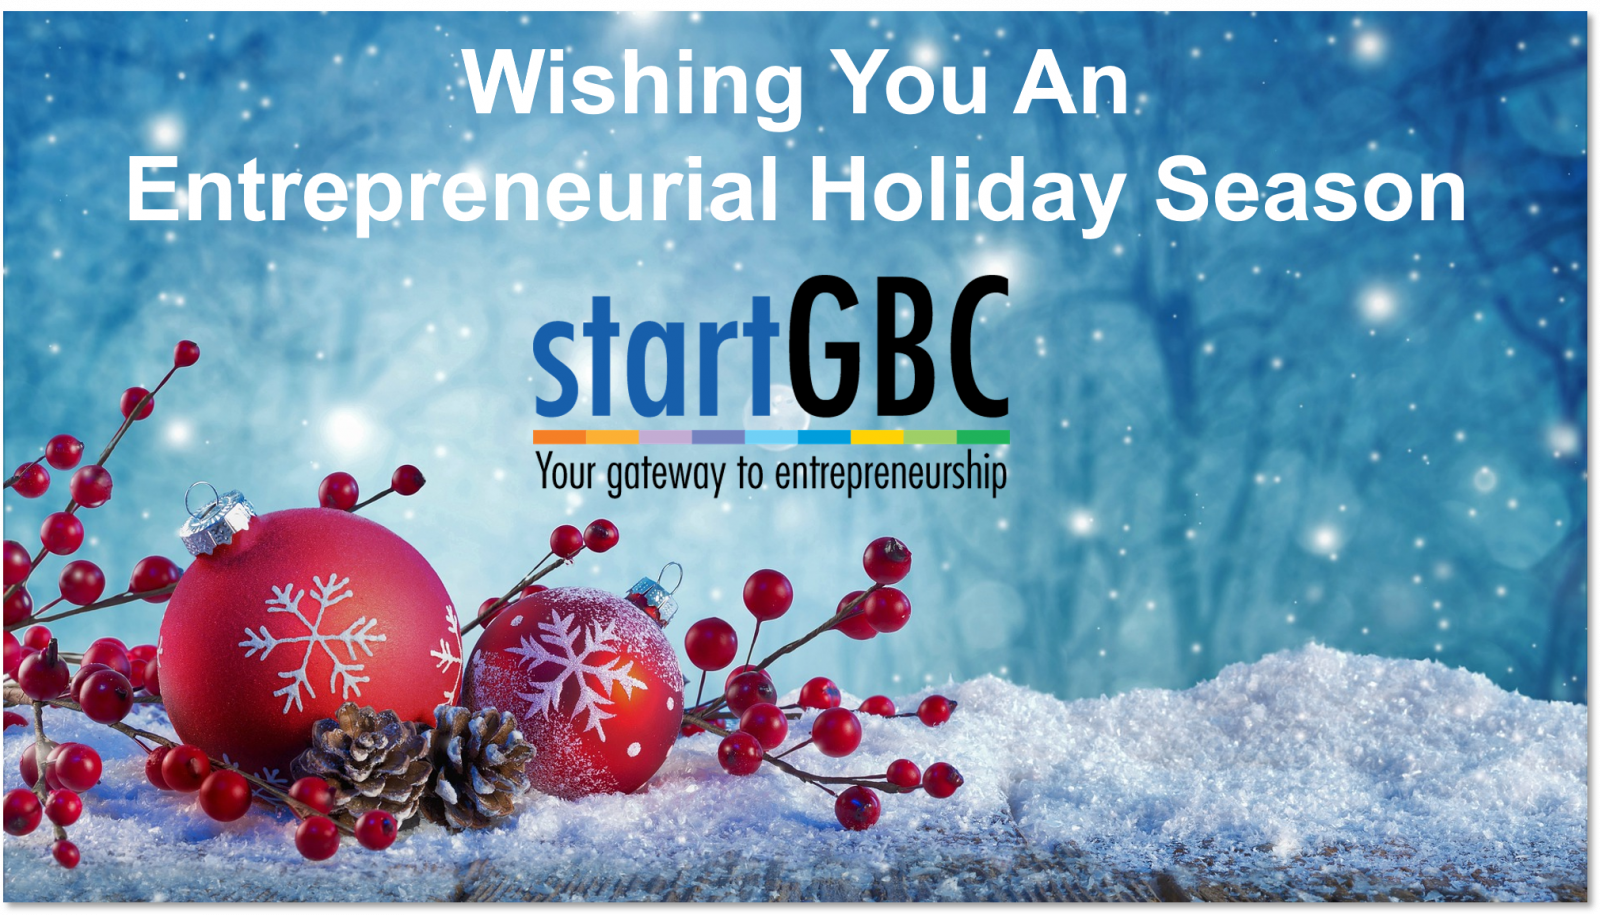 Season Greetings from startGBC